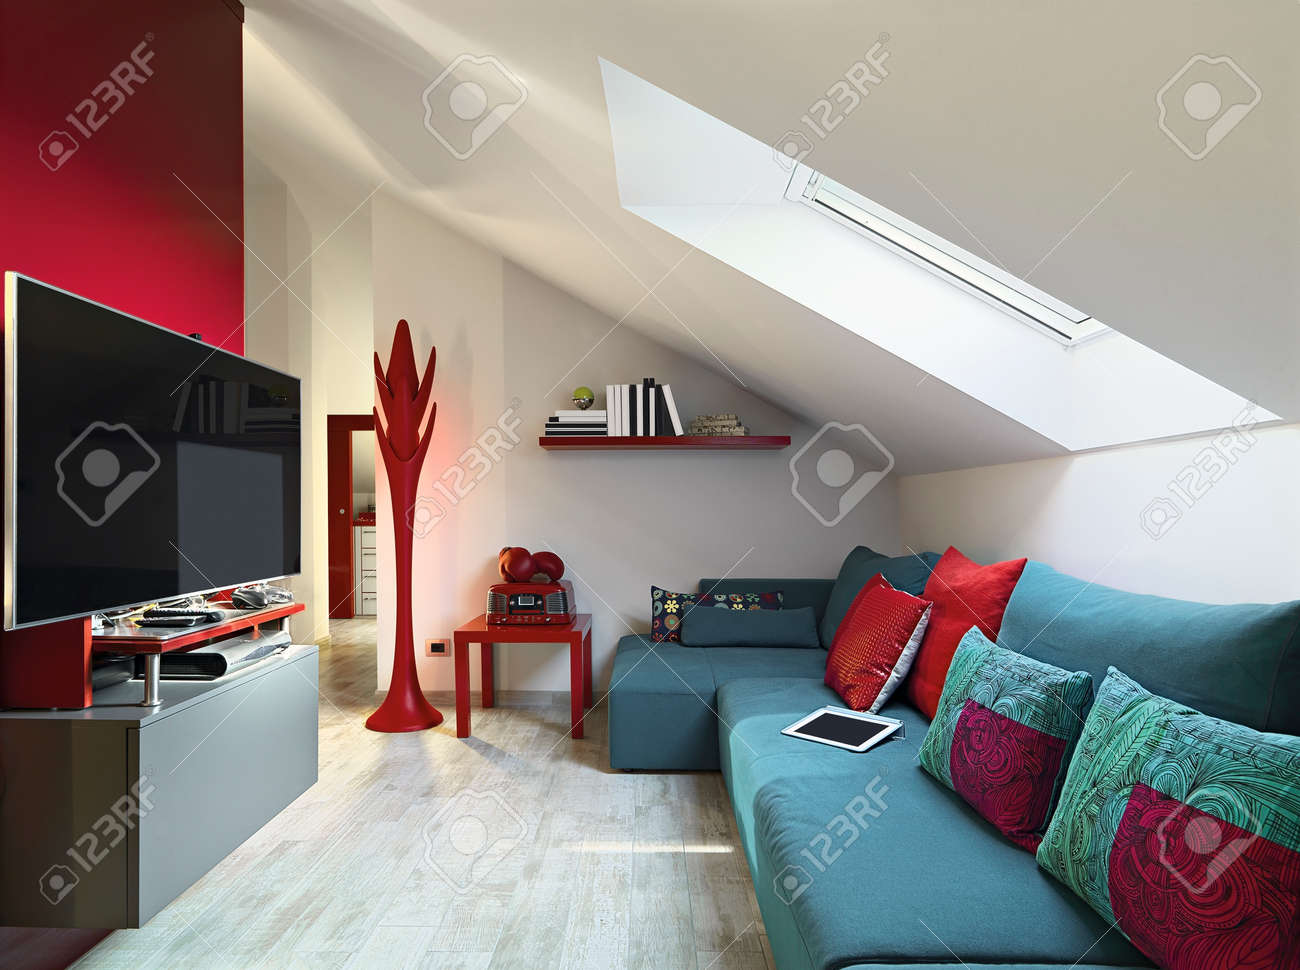 Blue Sofa In A Modern Living Room On Attic With Tile Floor Stock Photo